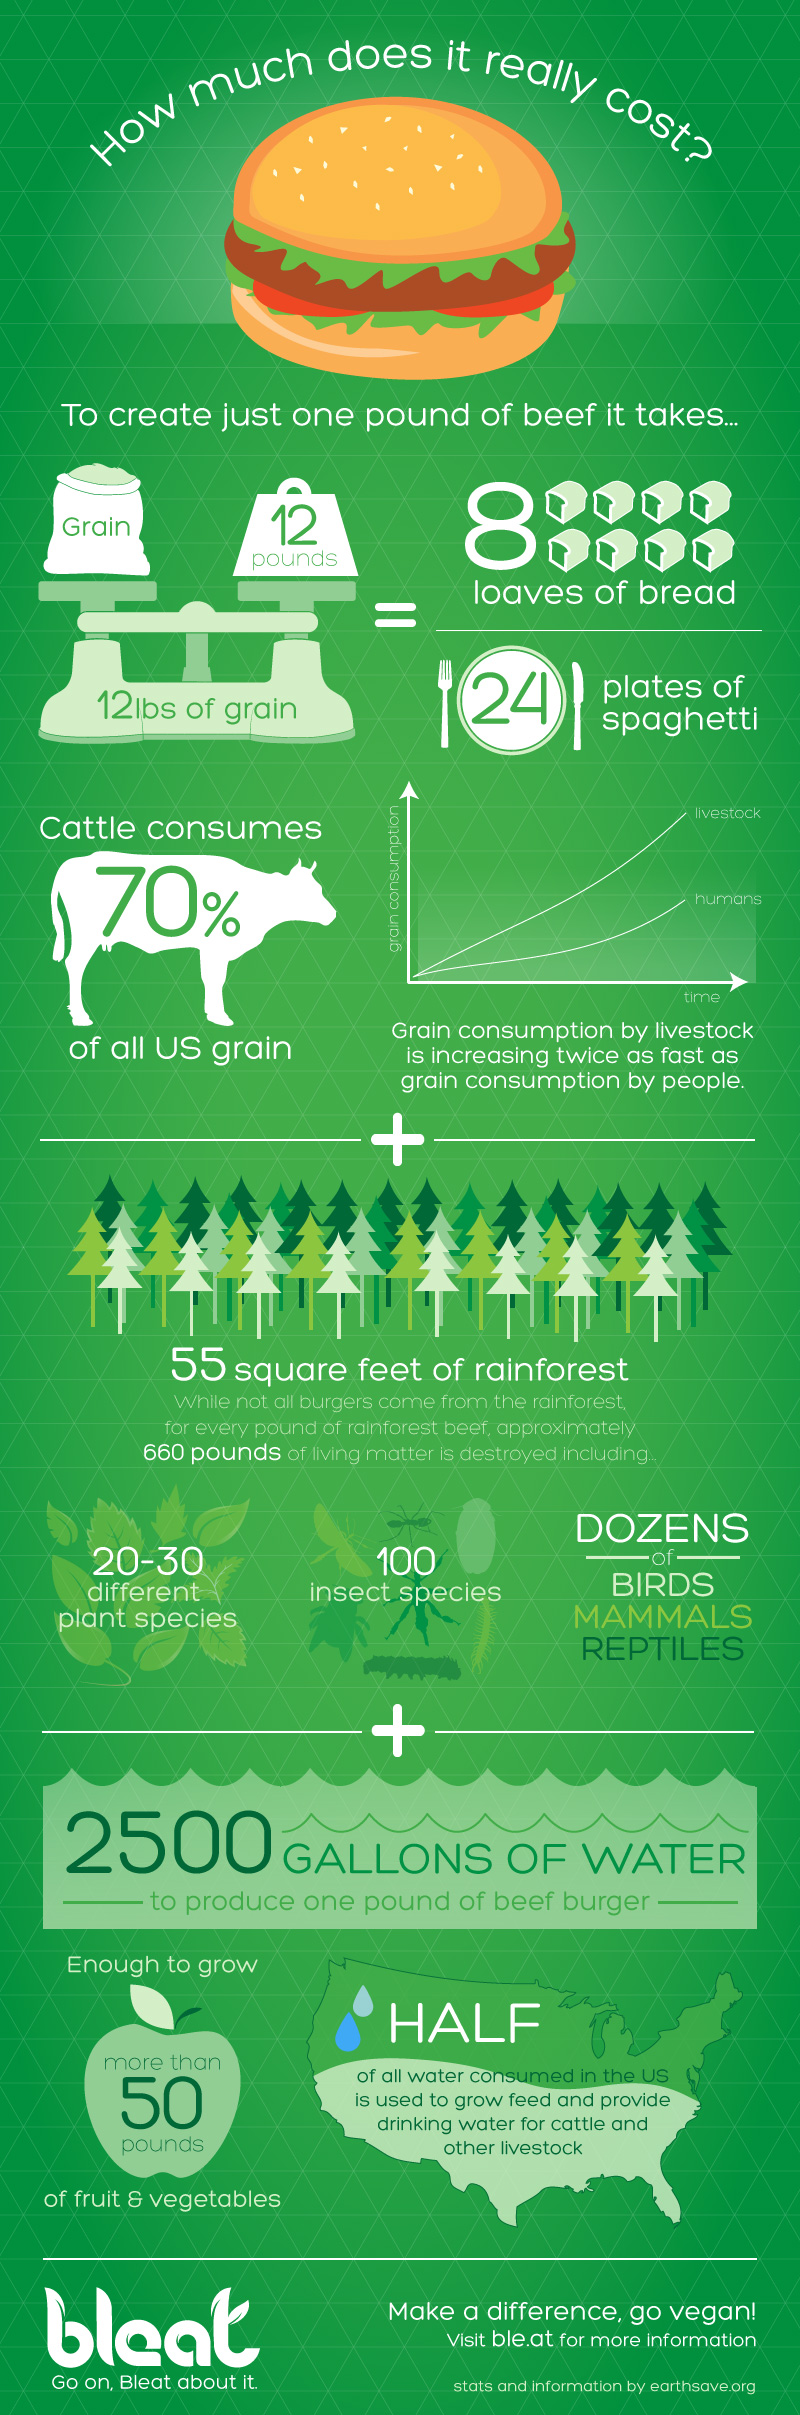 Not saying you have to go vegan, just some very interesting stats!